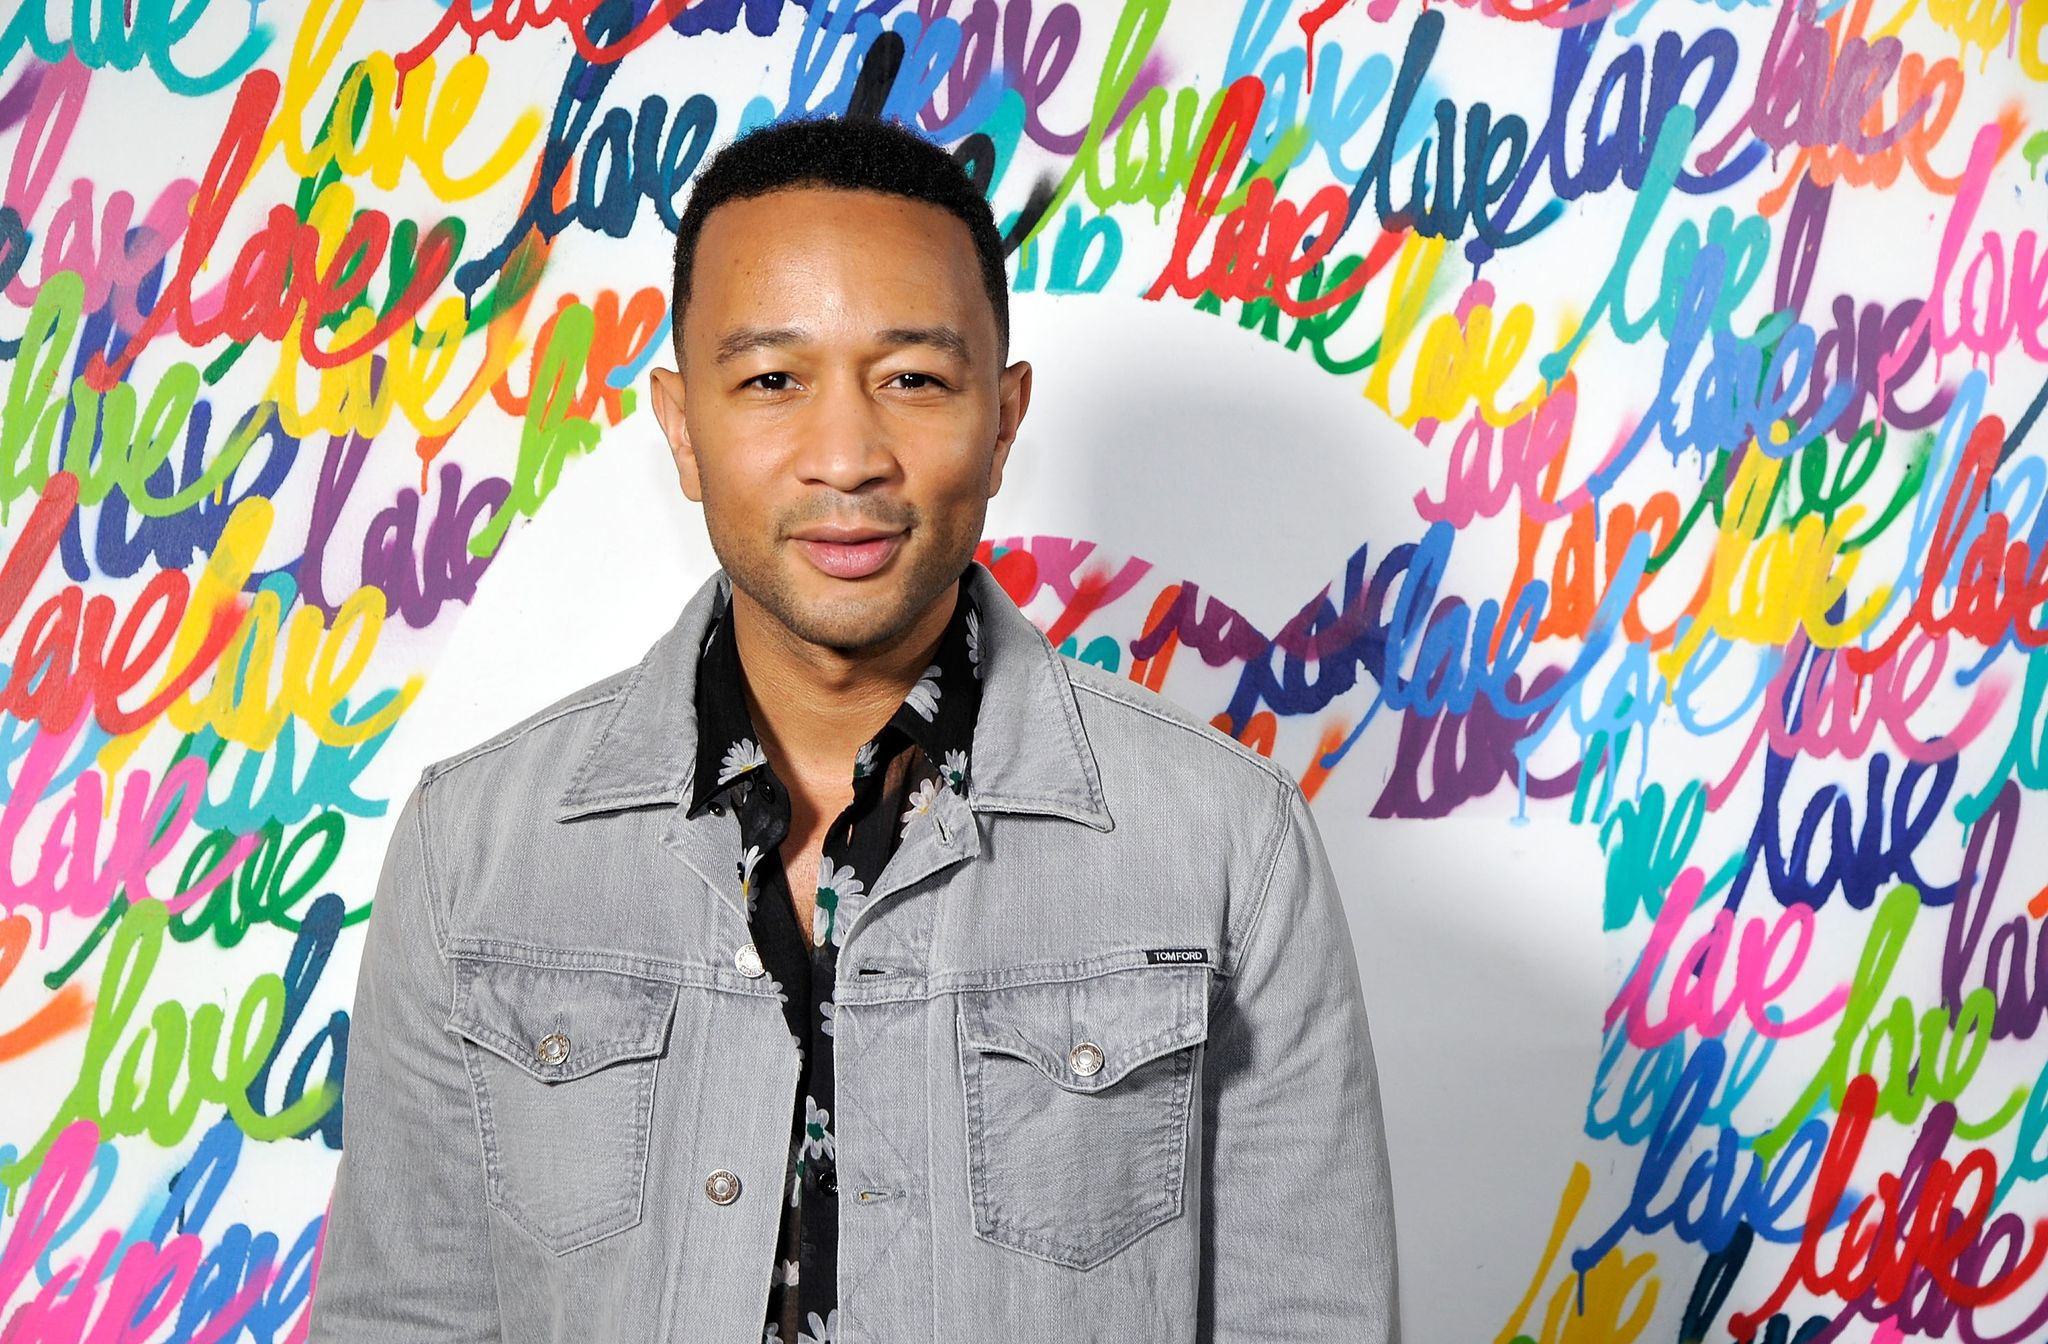 Music artist John Legend attending the Google premiere of his music video 'A Good Night,' filmed entirely on Google Pixel 2 on April 5, 2018 in California. | Photo: Getty Images.